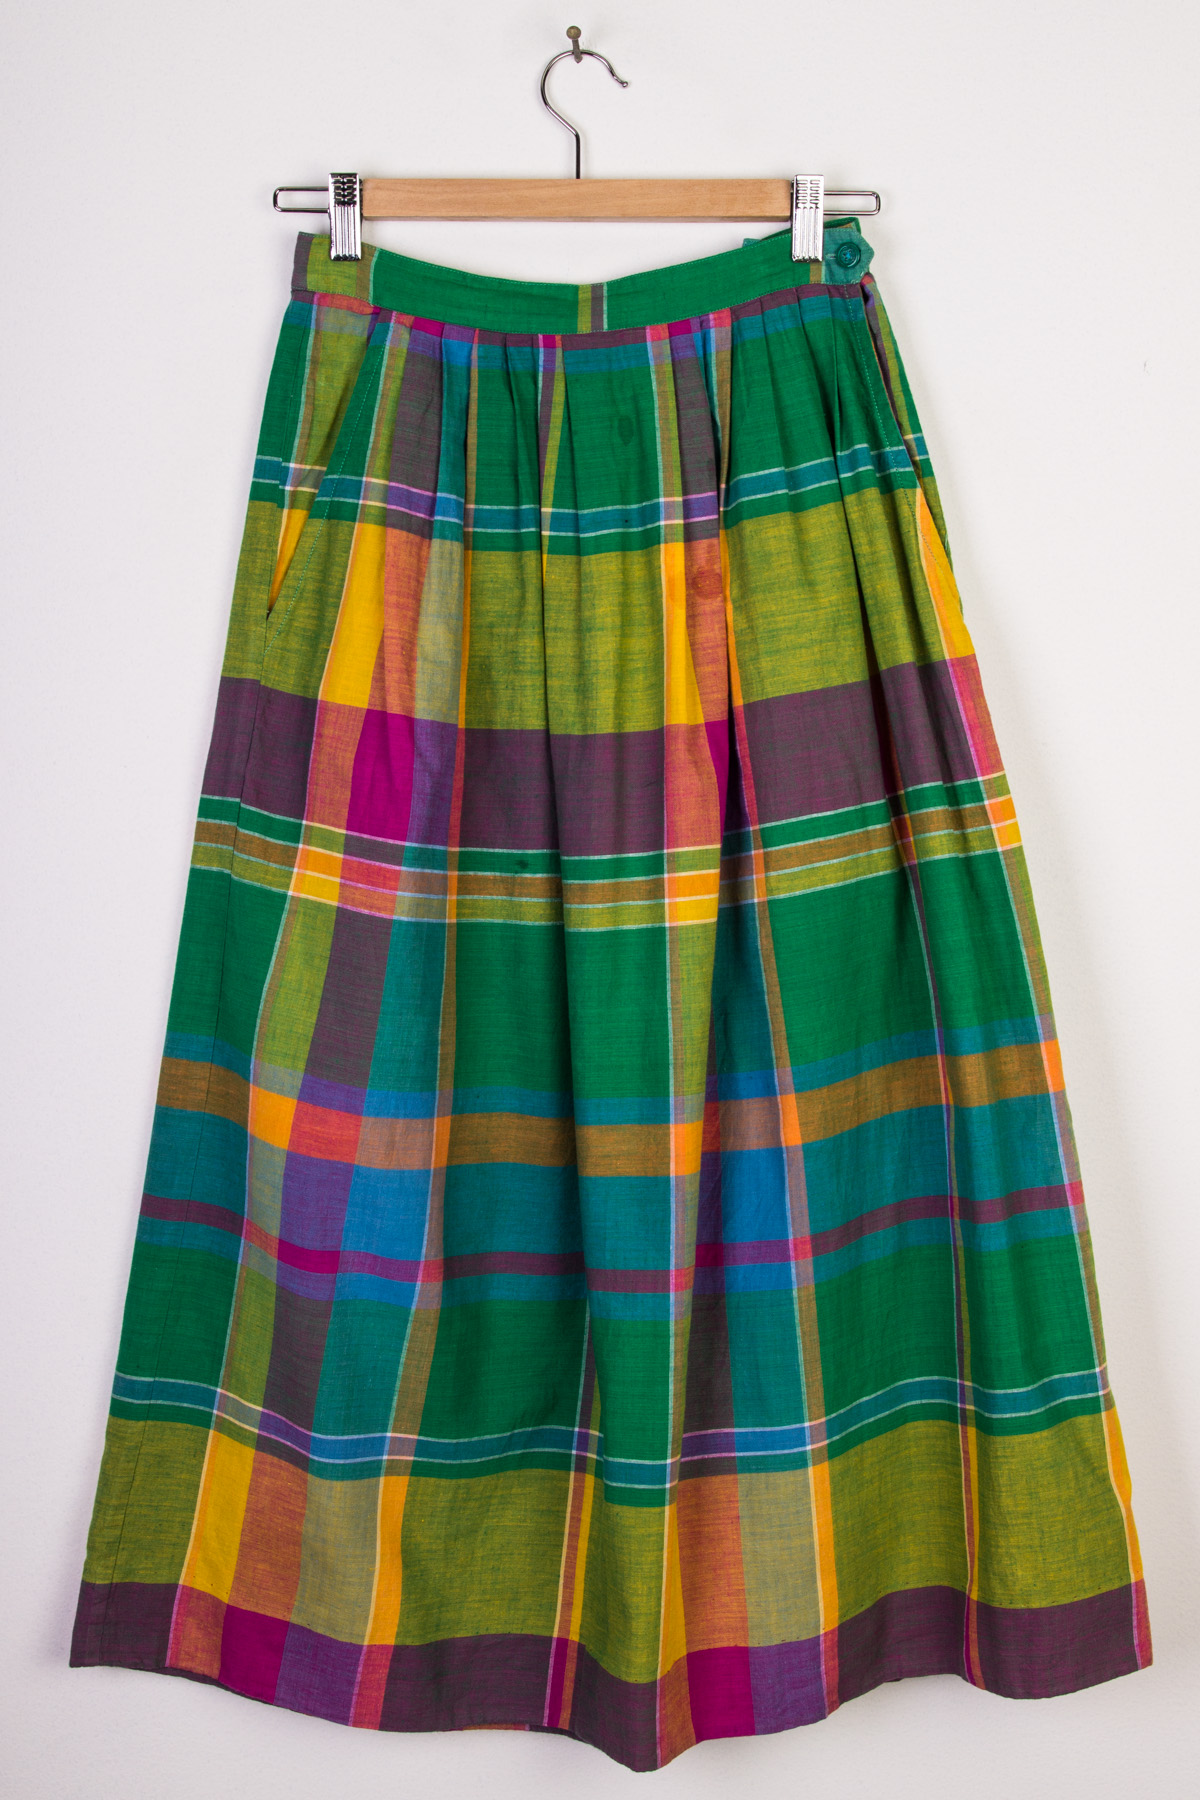 Green Plaid Mid-Length Skirt